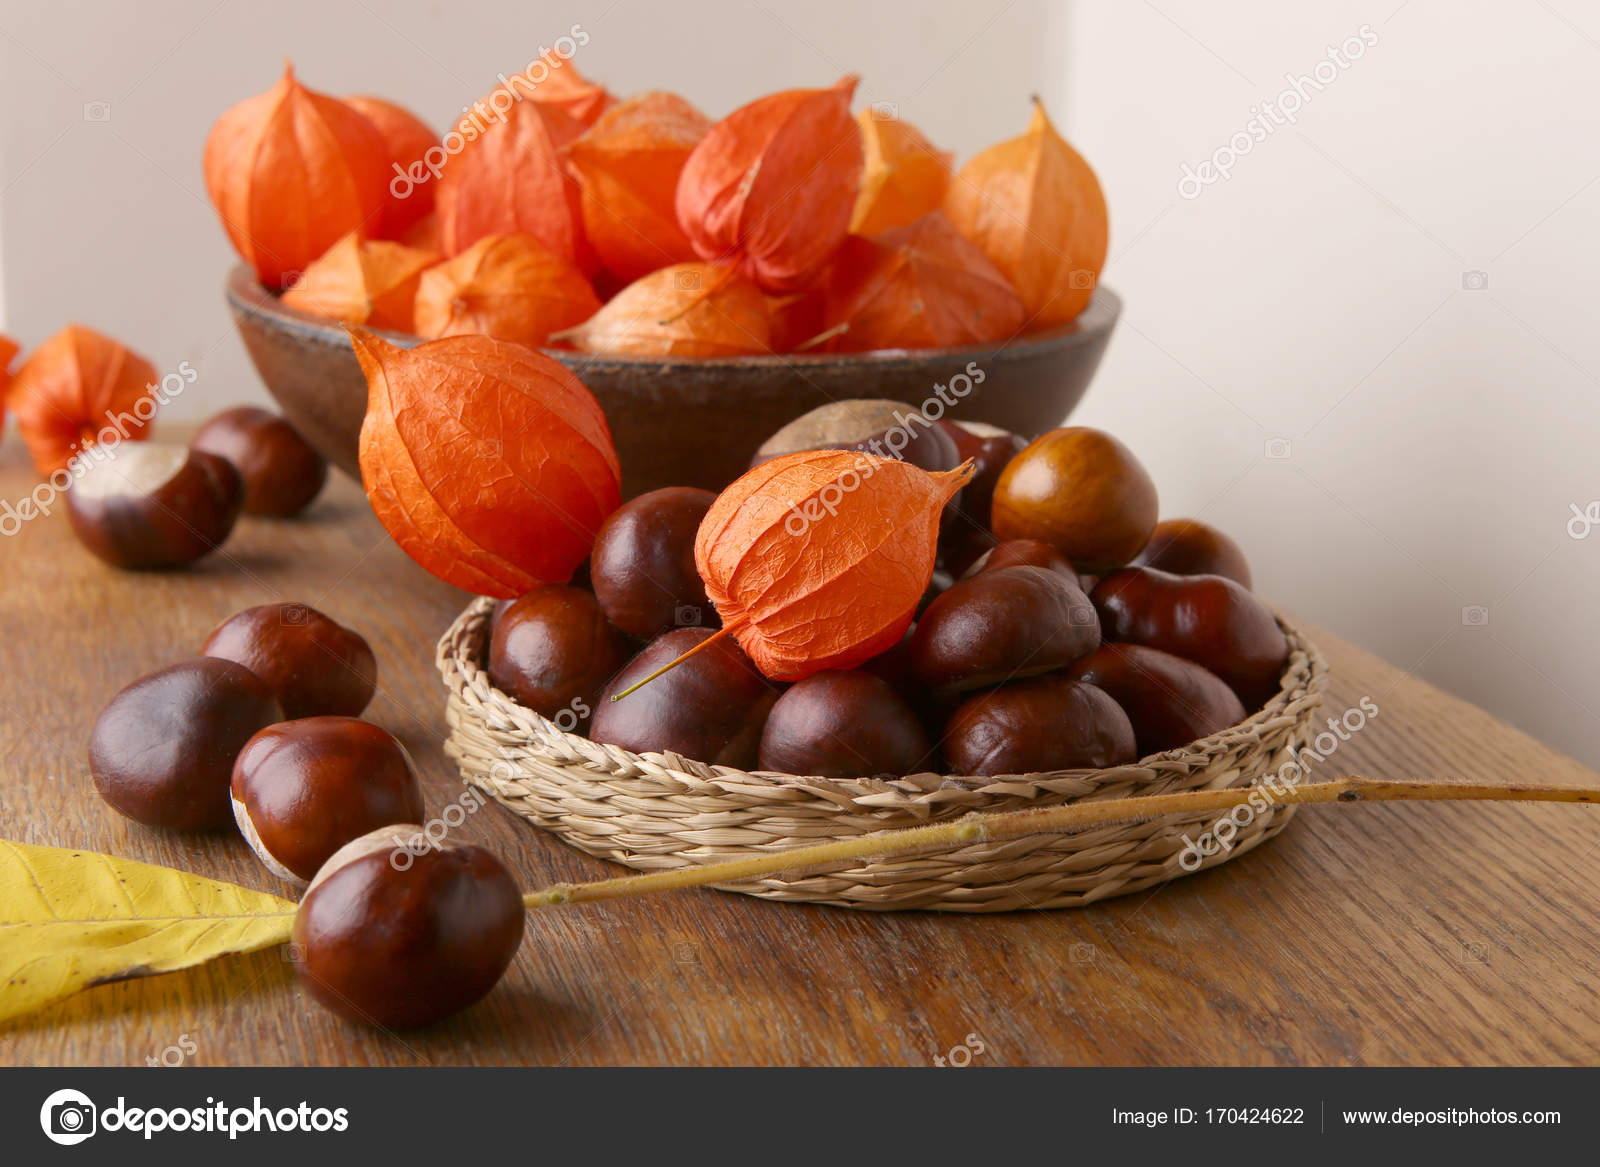 Herfst In Interieur : Herfst plant decoraties in interieur u2014 stockfoto © vaitekune #170424622